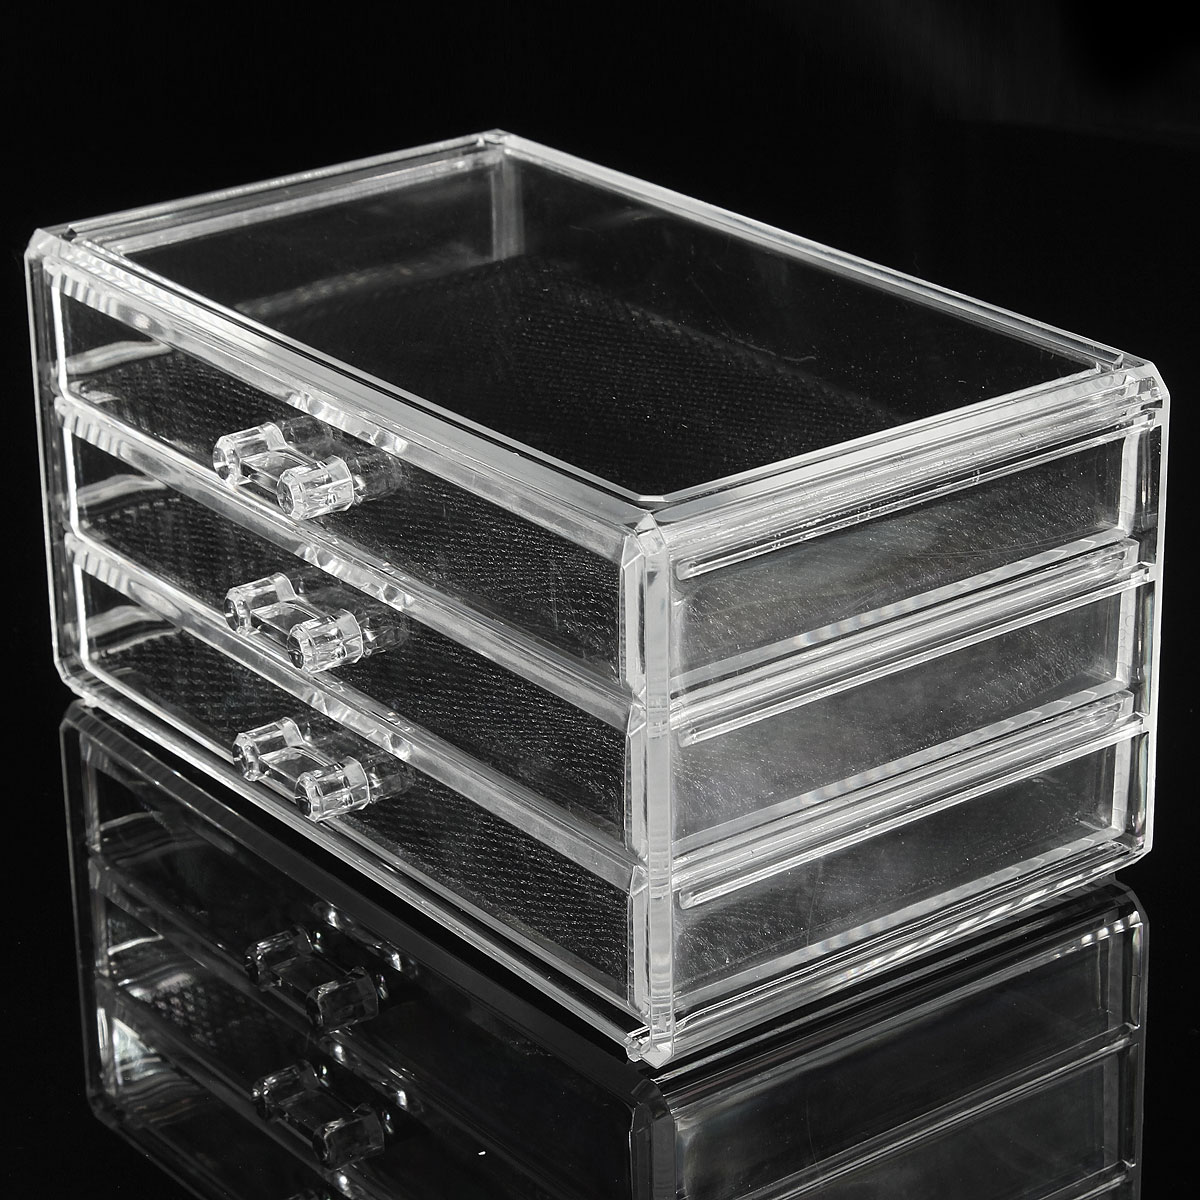 Clear Acrylic Cosmetic Jewelry Makeup Organizer Box Case 3